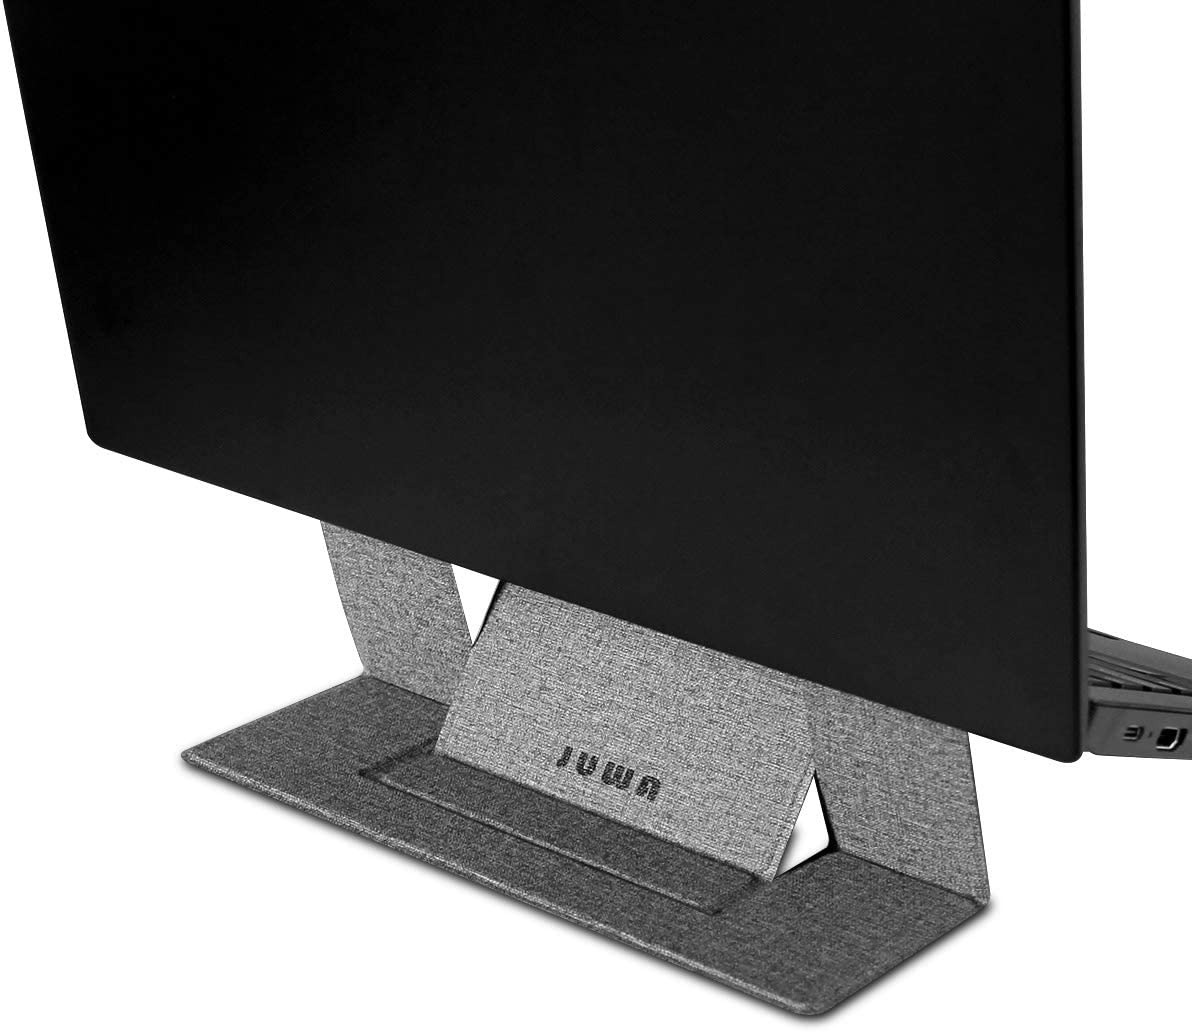 Portable Laptop Stand Adhesive Invisible Laptop Stands Dual-Angle Adjustable Anti-Slip Kickstand Foldable for MacBook Laptops Ipad Tablet(Gray)